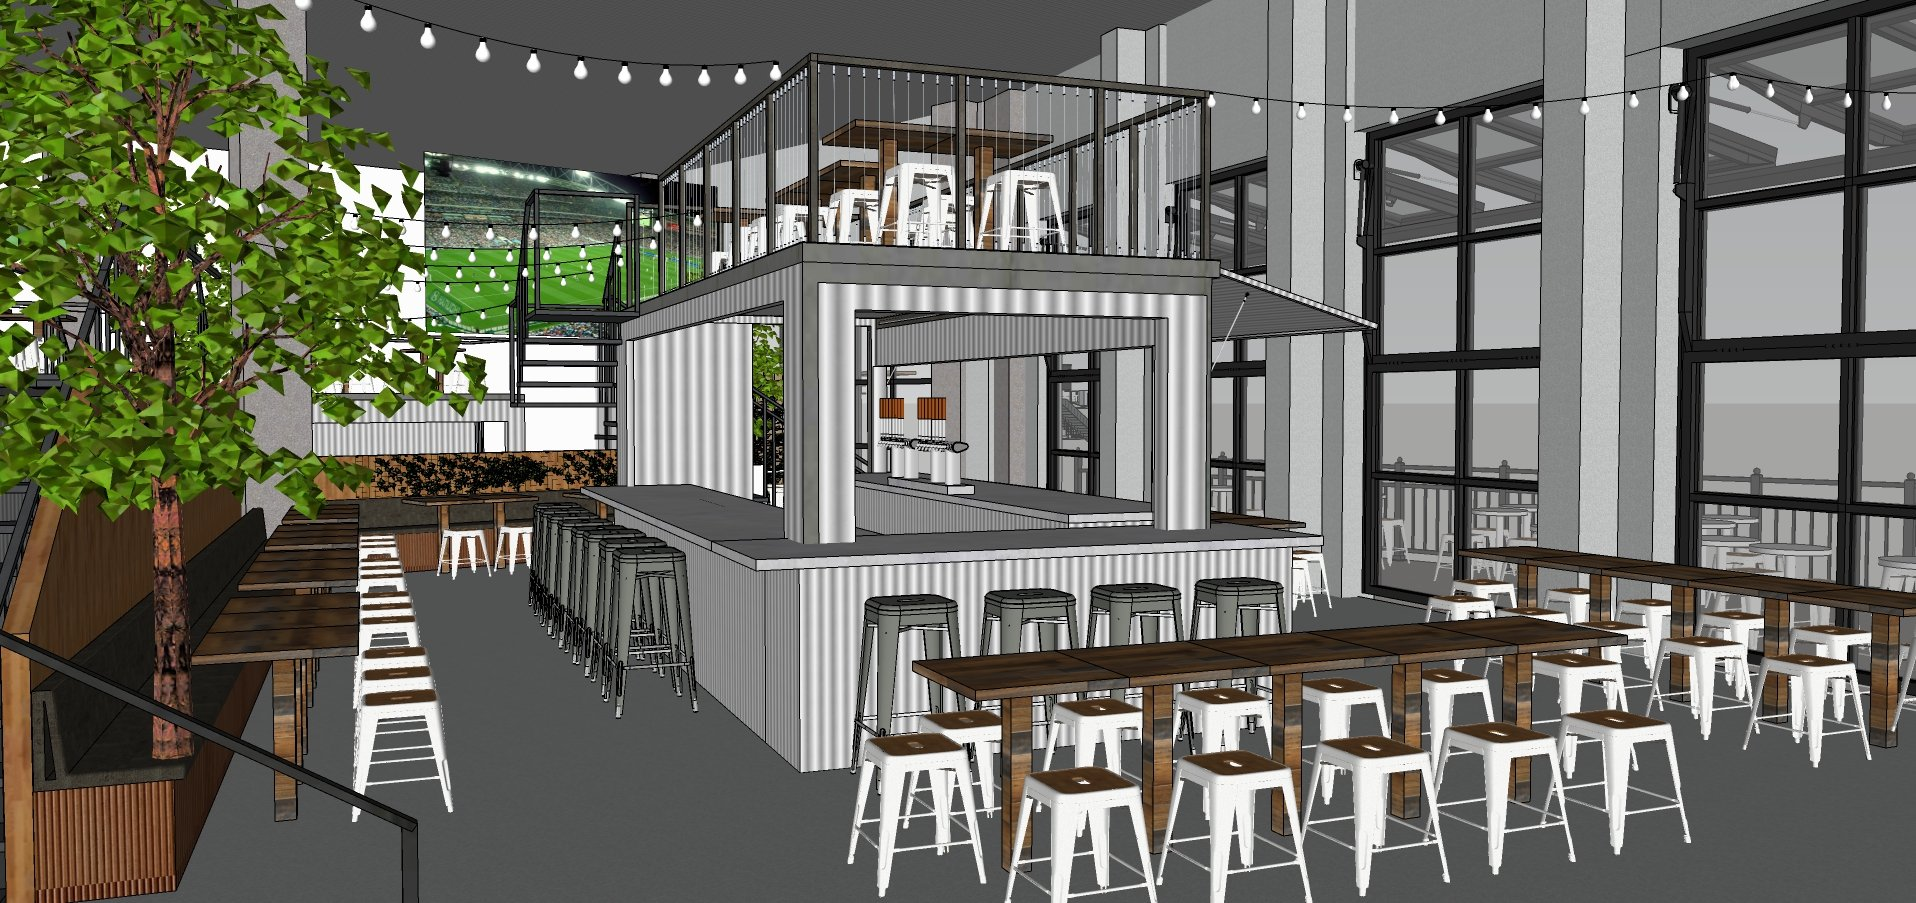 Asian Food Hall The Block Is Opening a Second, Bigger Location in